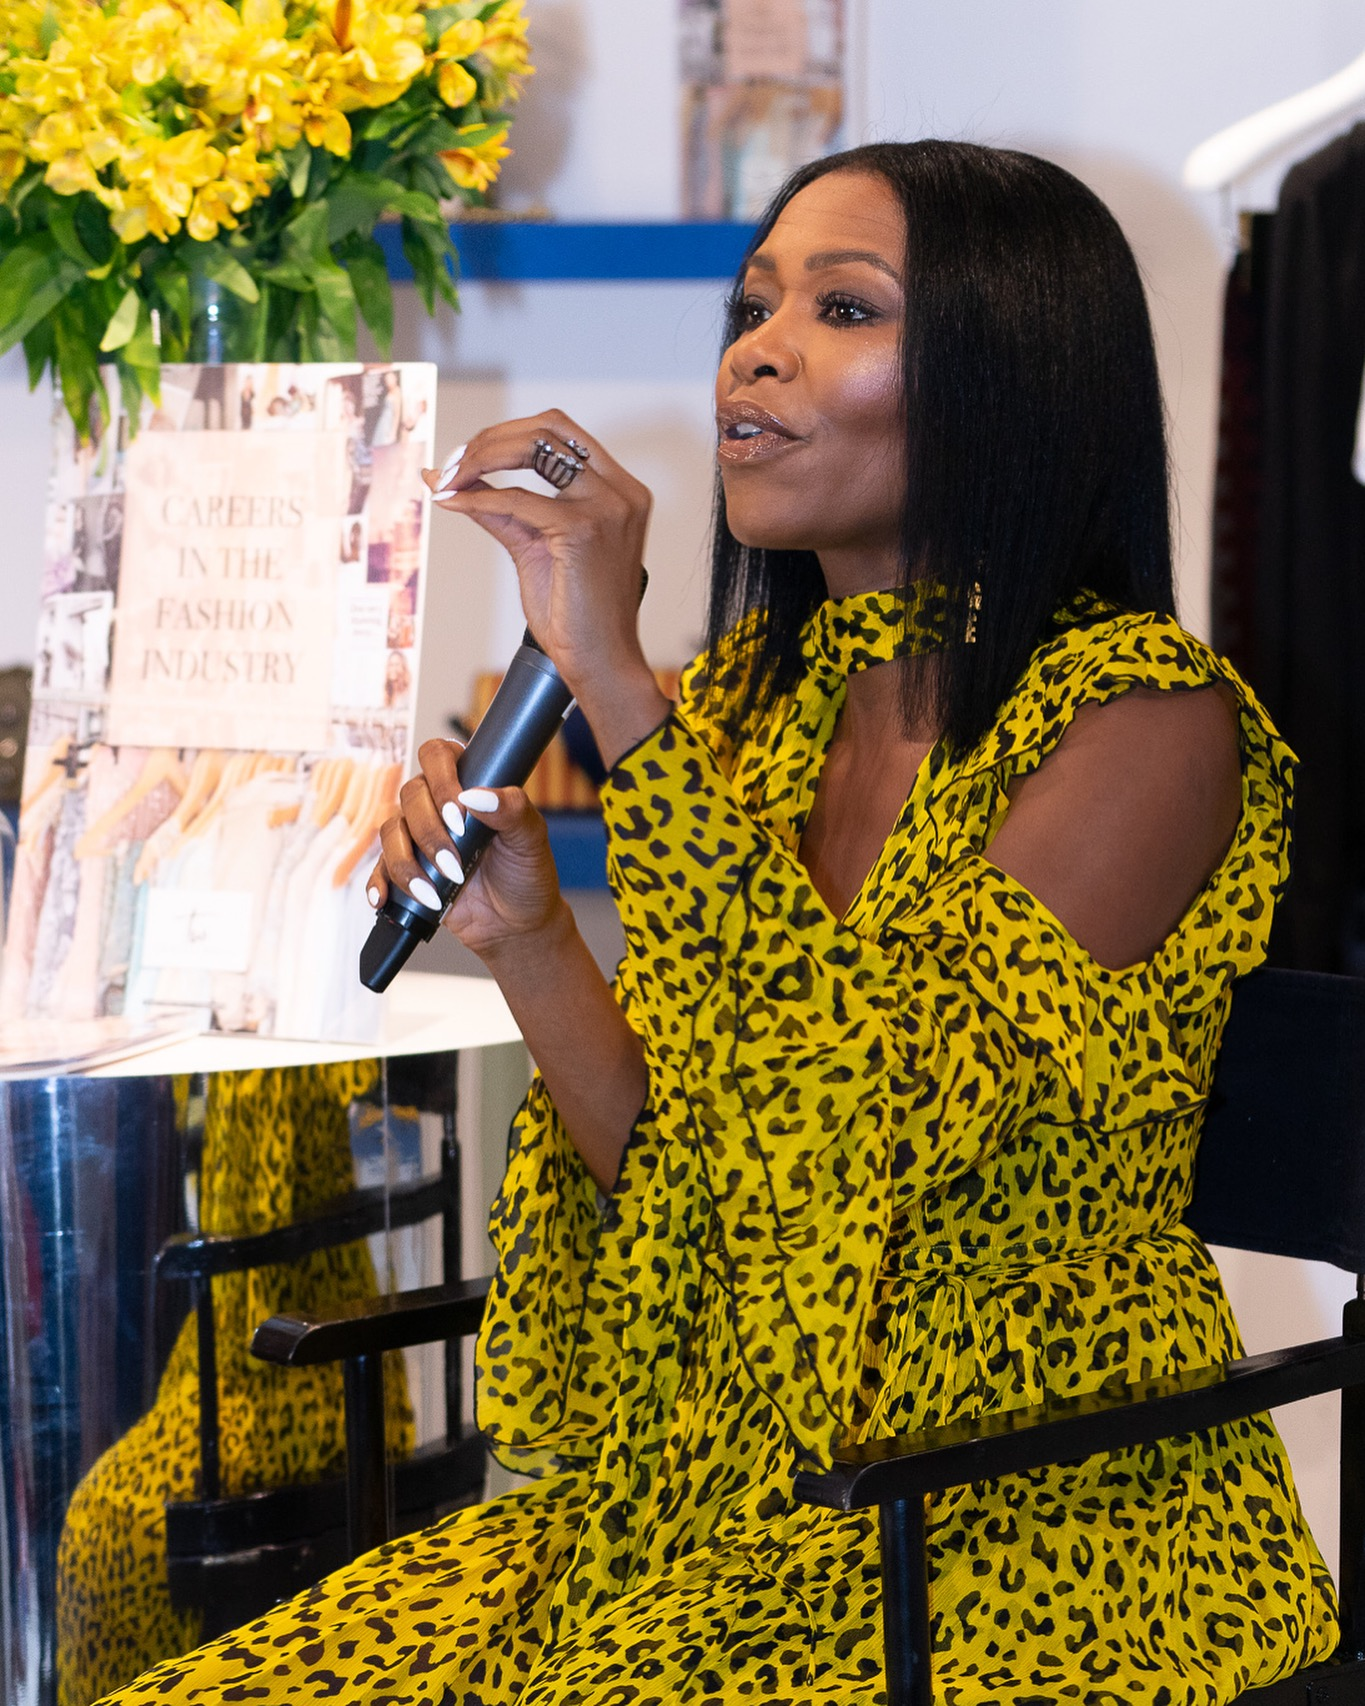 Tamiko speaking at DVF event.JPG